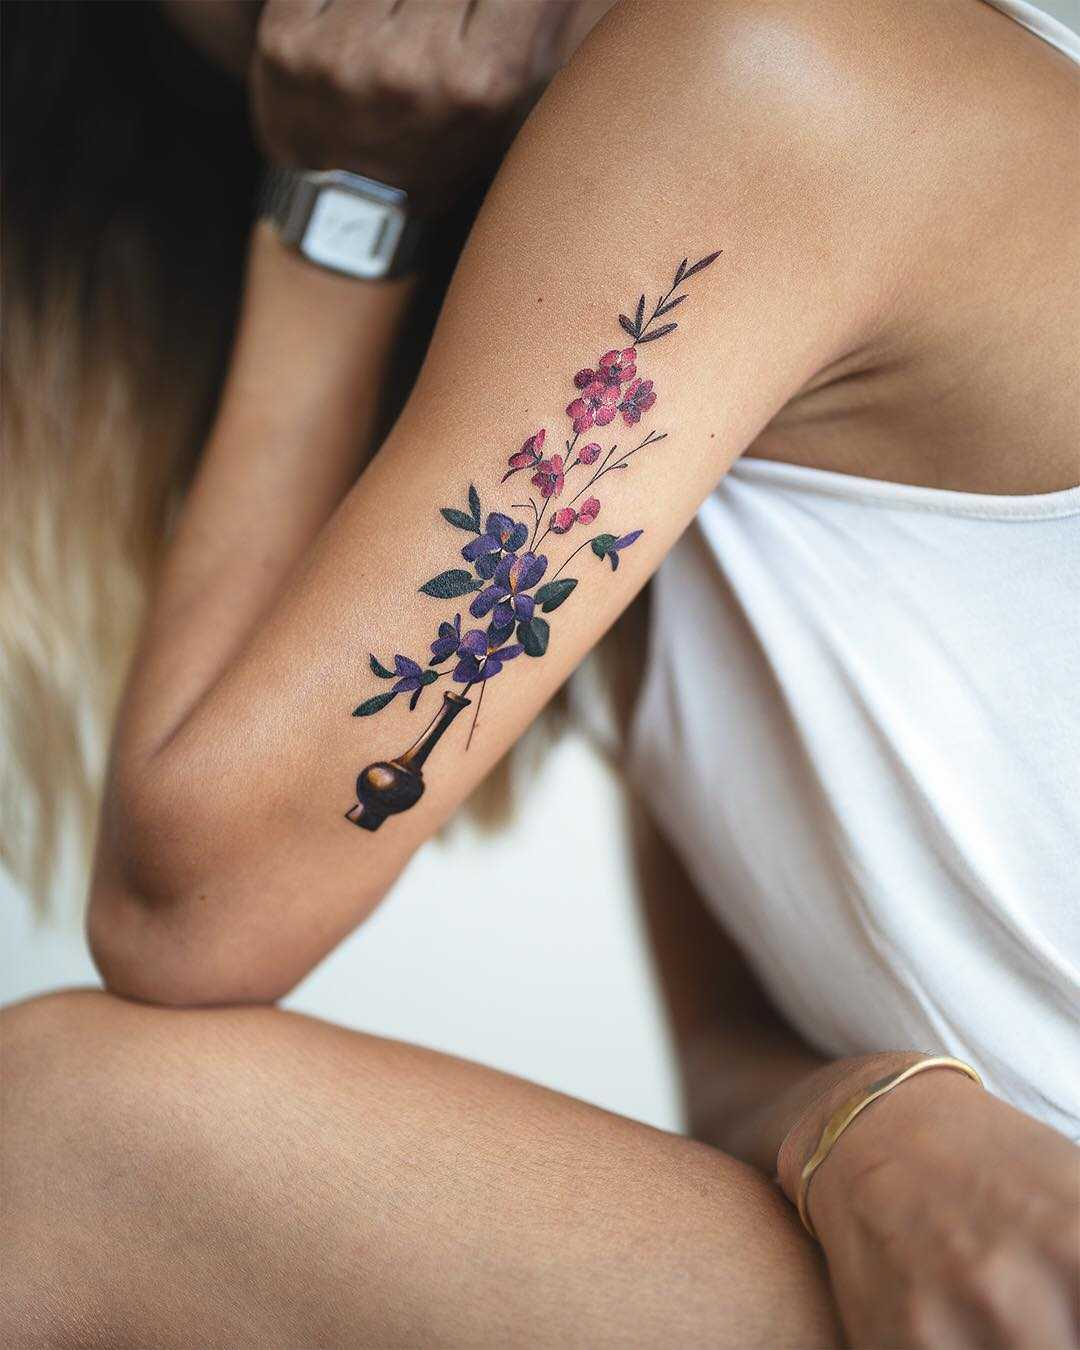 Beautiful flowers inked on the arm by Rey Jasper